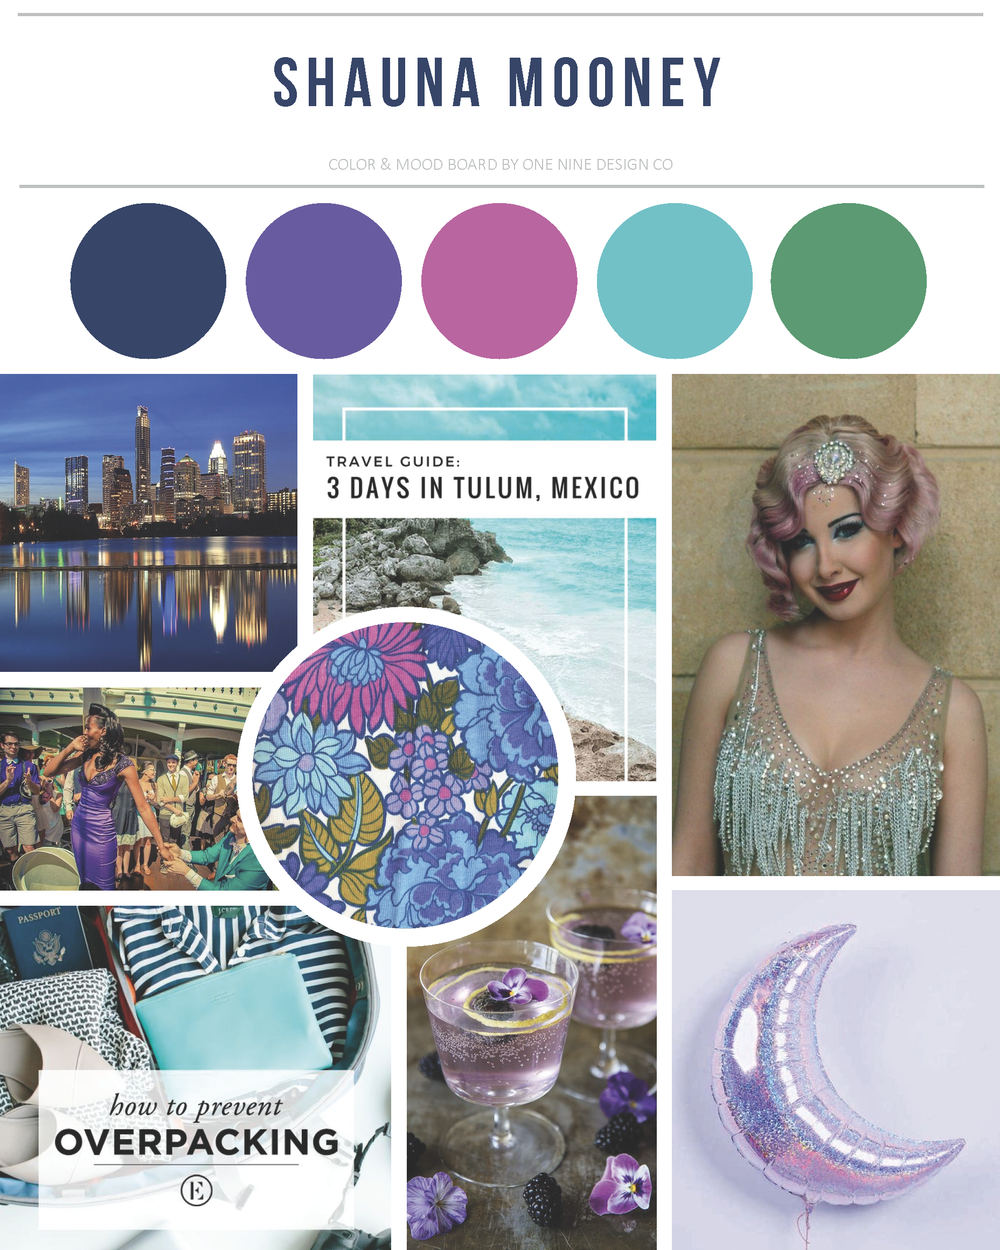 Shauna Mooney Mood Board | One Nine Design Co